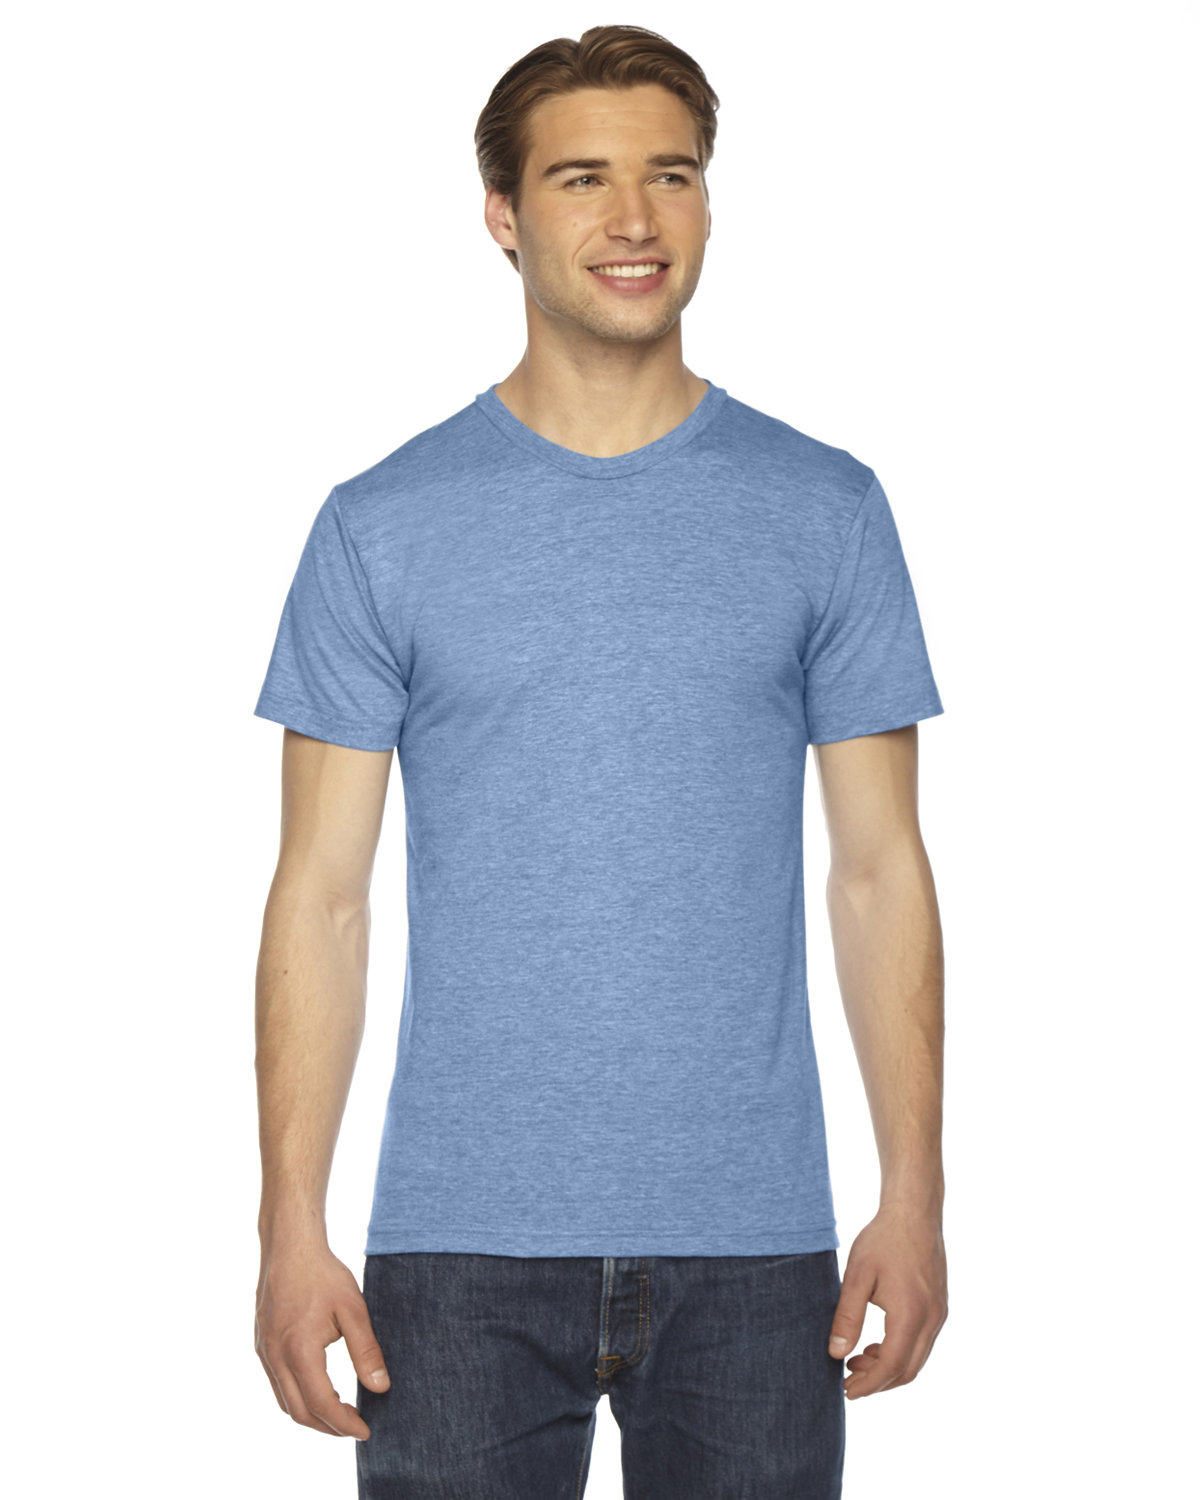 American Apparel Unisex Triblend USA Made Short-Sleeve Track T-Shirt ATHLETIC BLUE